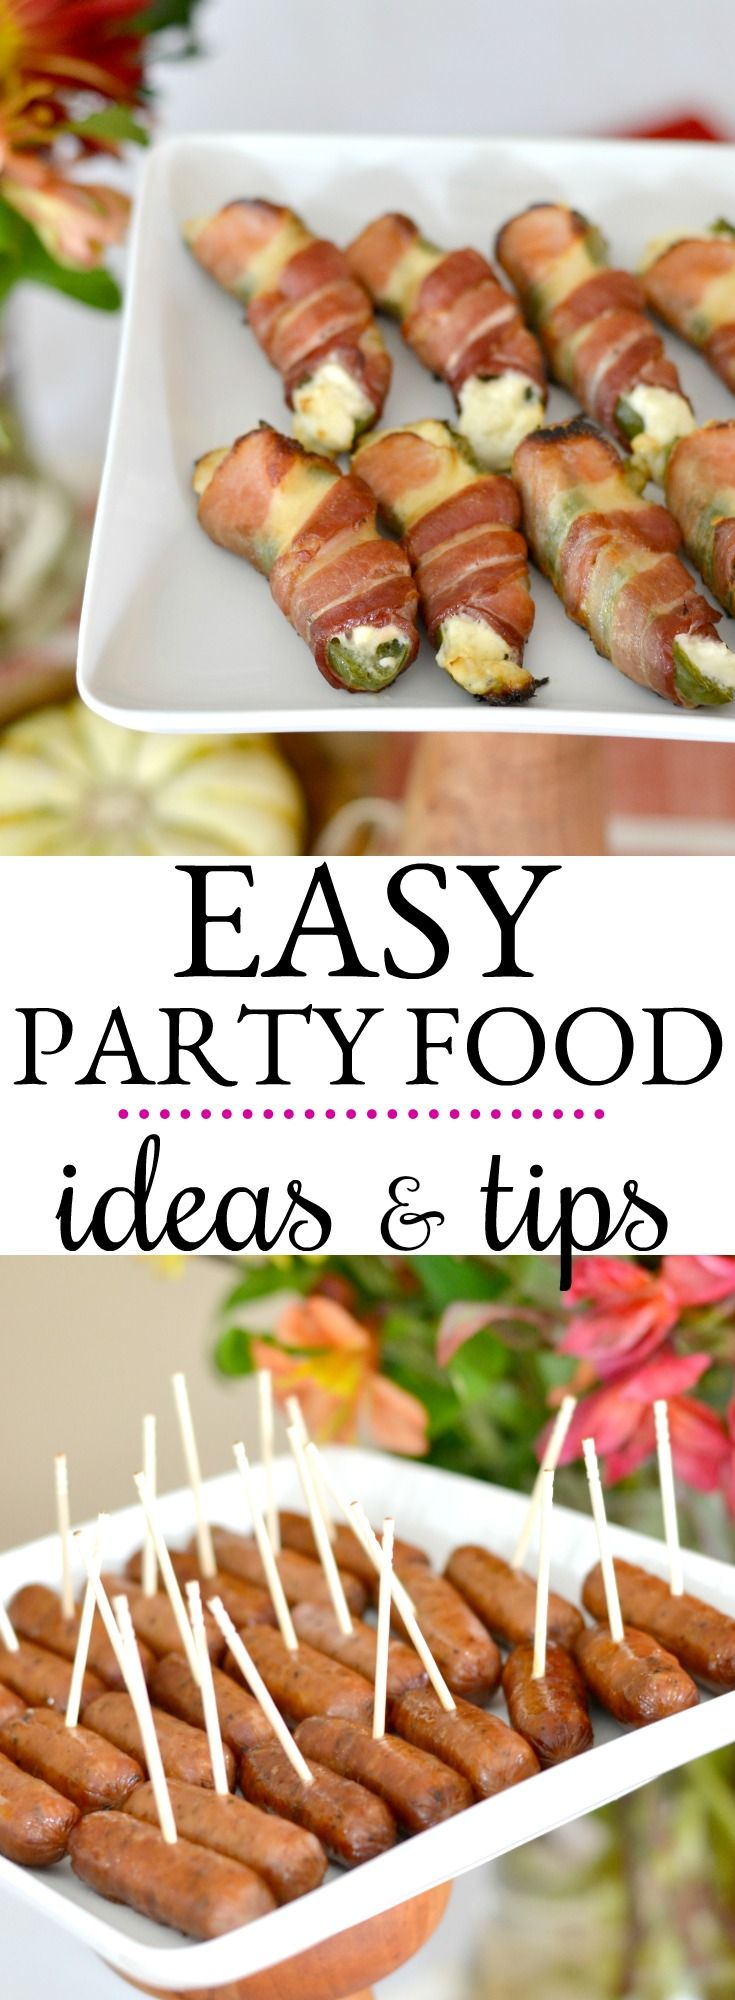 Tips for hosting a cocktail party with appetizers that are delicious and easy to prepare. #holidayparty #friendsgiving #partyfood #easyentertaining #cocktailparty #sponsored